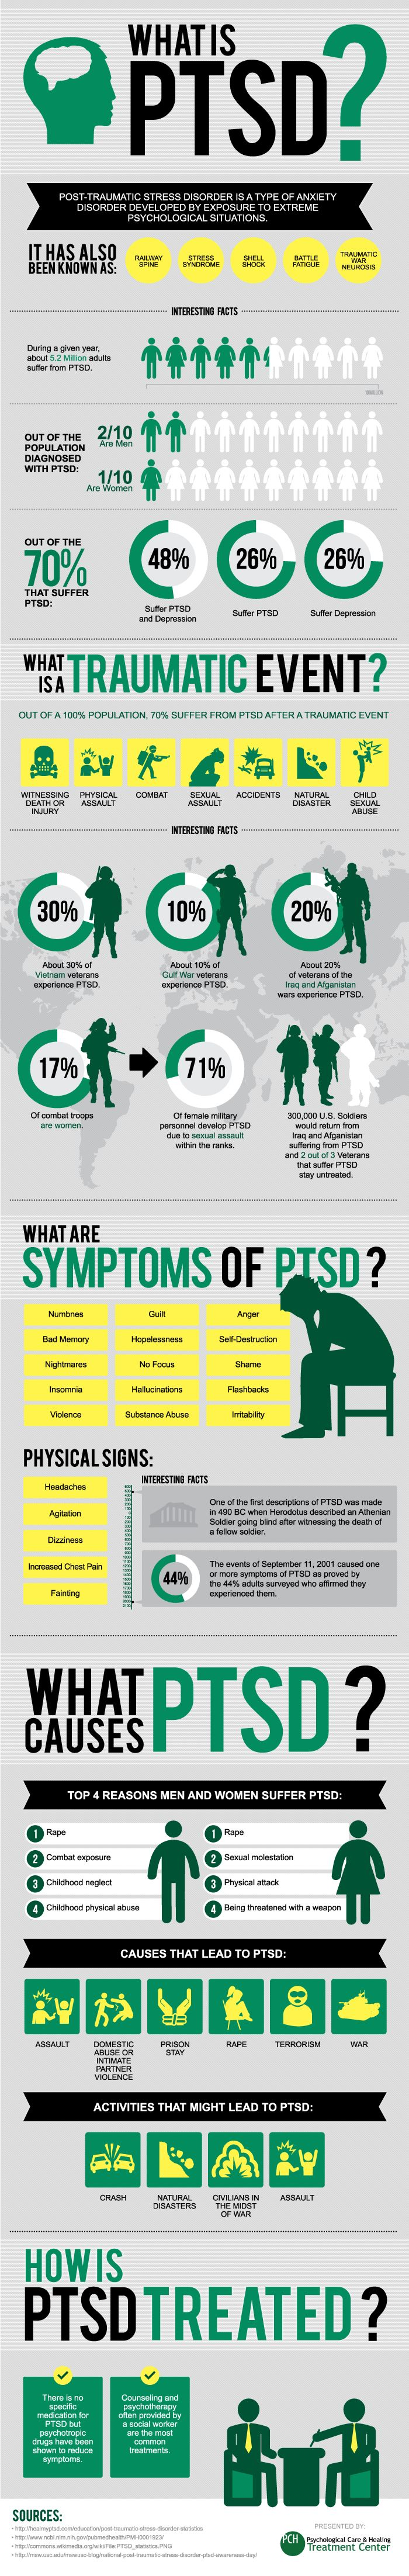 Something people should know about so they can help not fear Spread and Share - PTSD Awareness. It can affect many people not just Veterans and Law Enforcement. Their is a lot of help for those who survive.